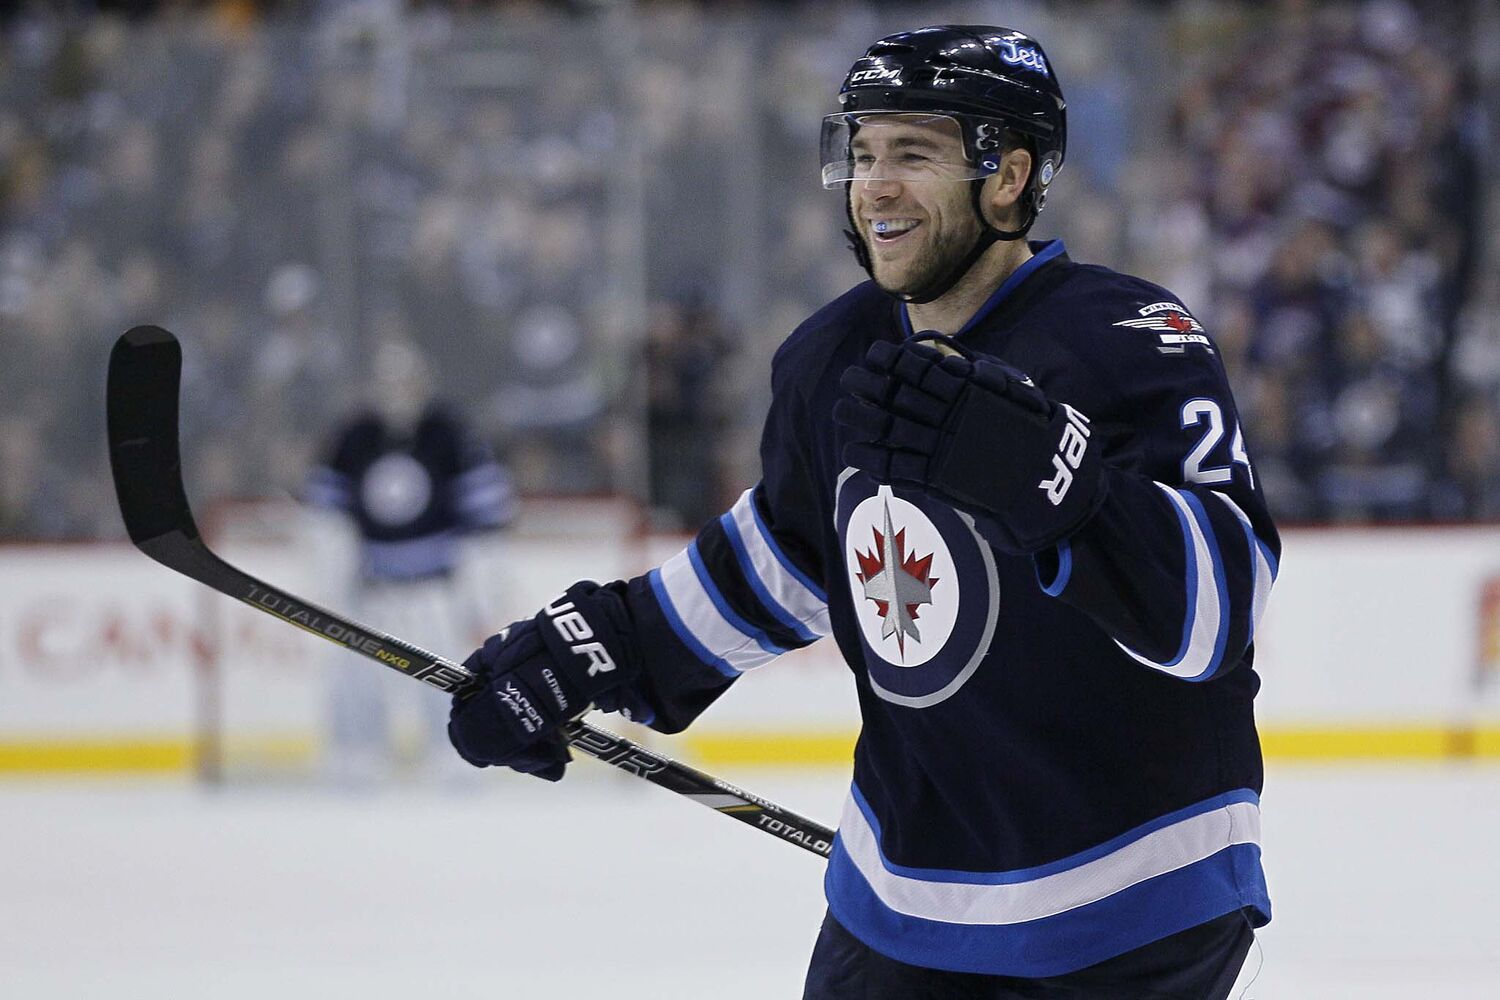 Winnipeg Jets' Grant Clitsome (24) celebrates his goal against the San Jose Sharks during the second period. (JOHN WOODS / WINNIPEG FREE PRESS)